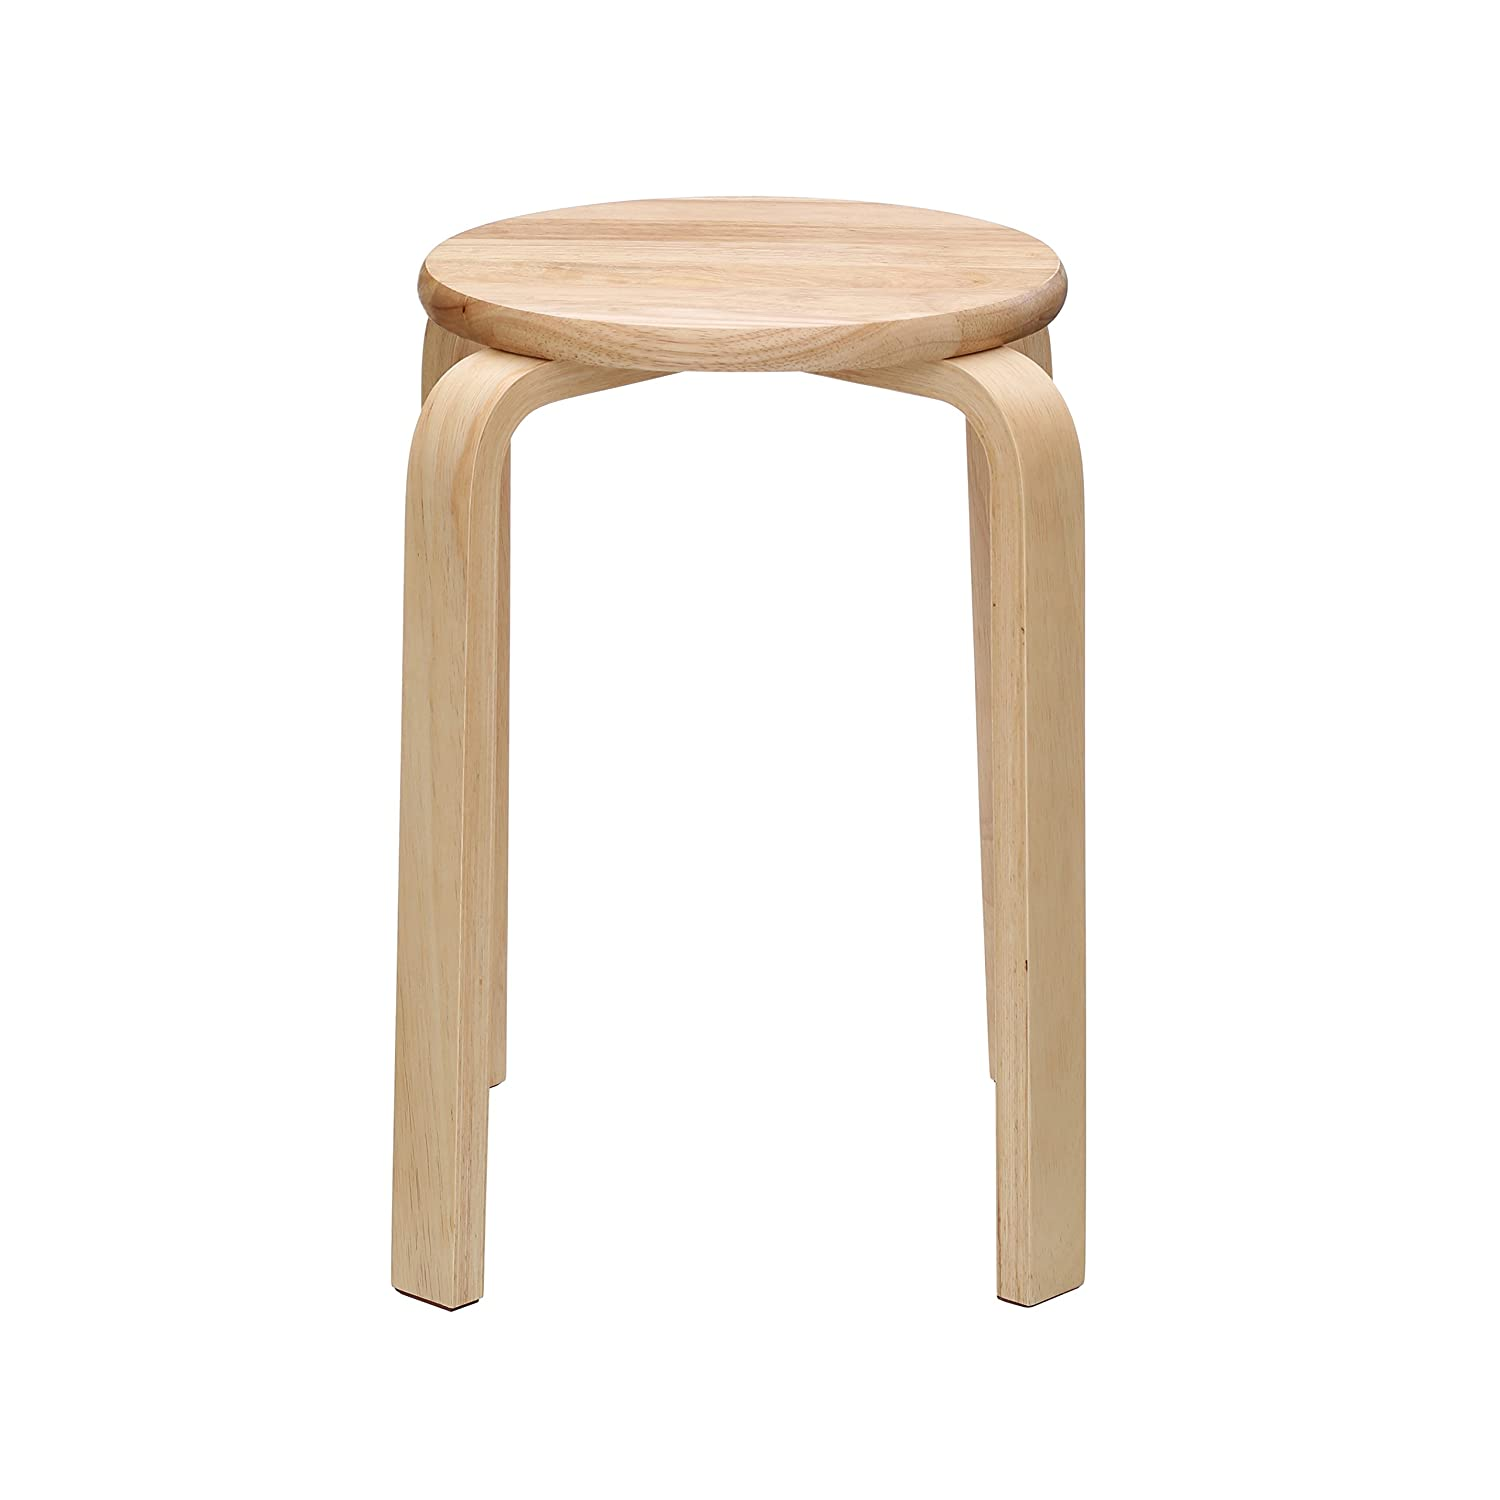 Tabouret coffre ikea perfect large size of tabouret salle for Tabouret couleur ikea